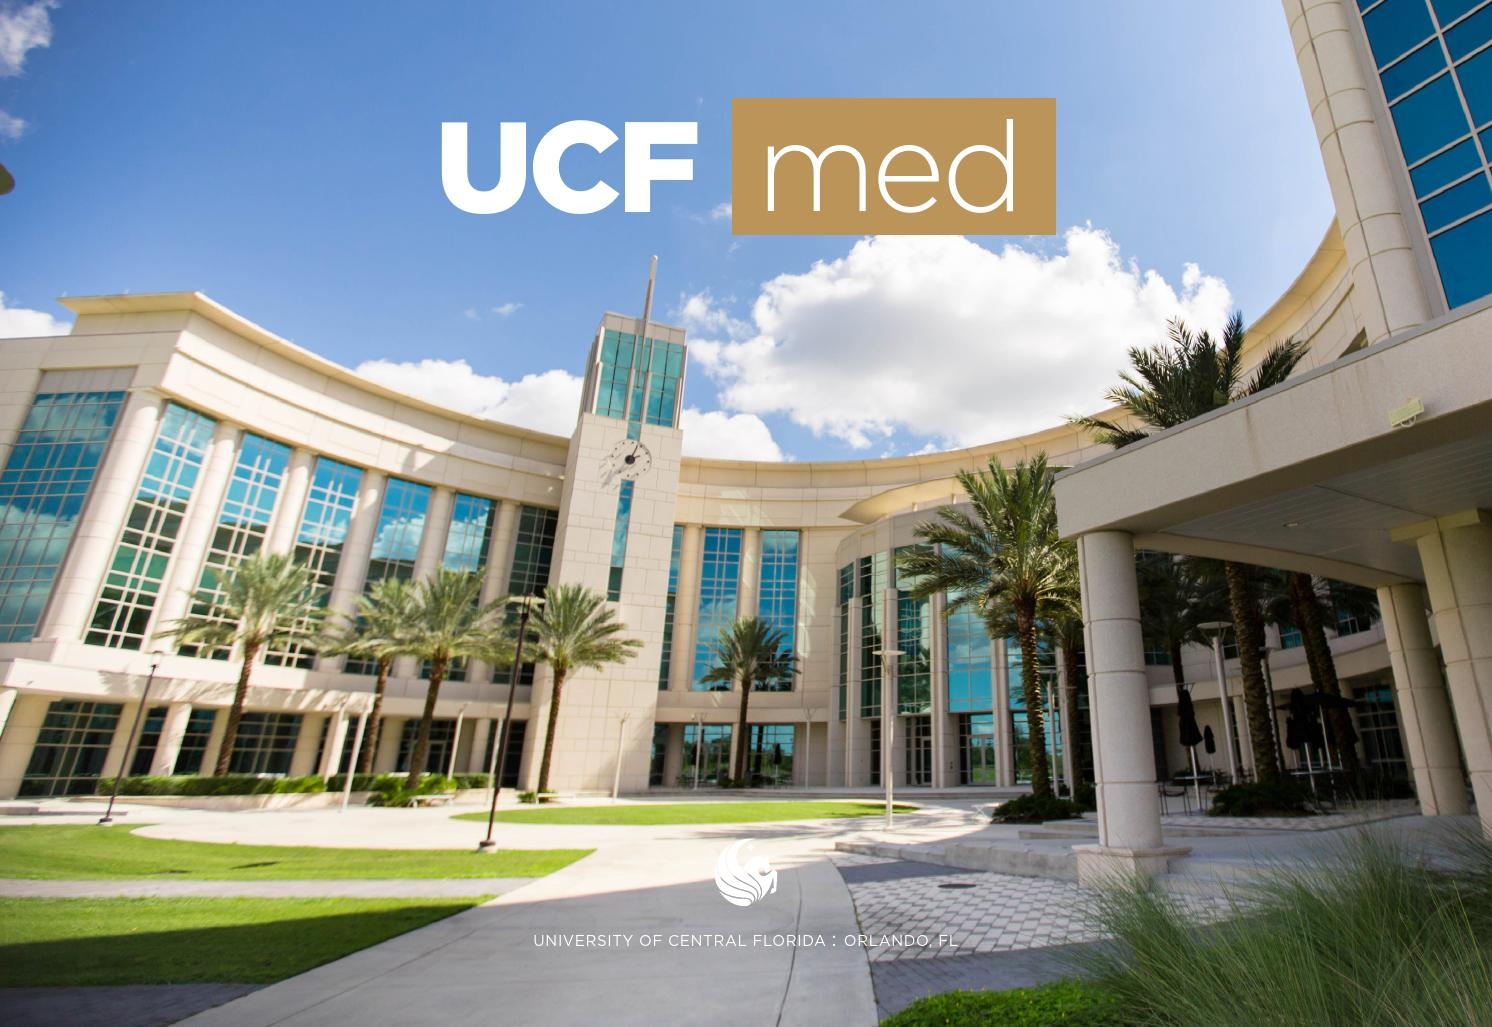 Ucf College Of Medicine Look Book 2015 By University Of. Instagram Hashtag Signs. Taxi Signs Of Stroke. Pregnant Signs. Homemade Signs. Ridges Signs. Patriotic Signs. Issues Signs. Replacement Signs